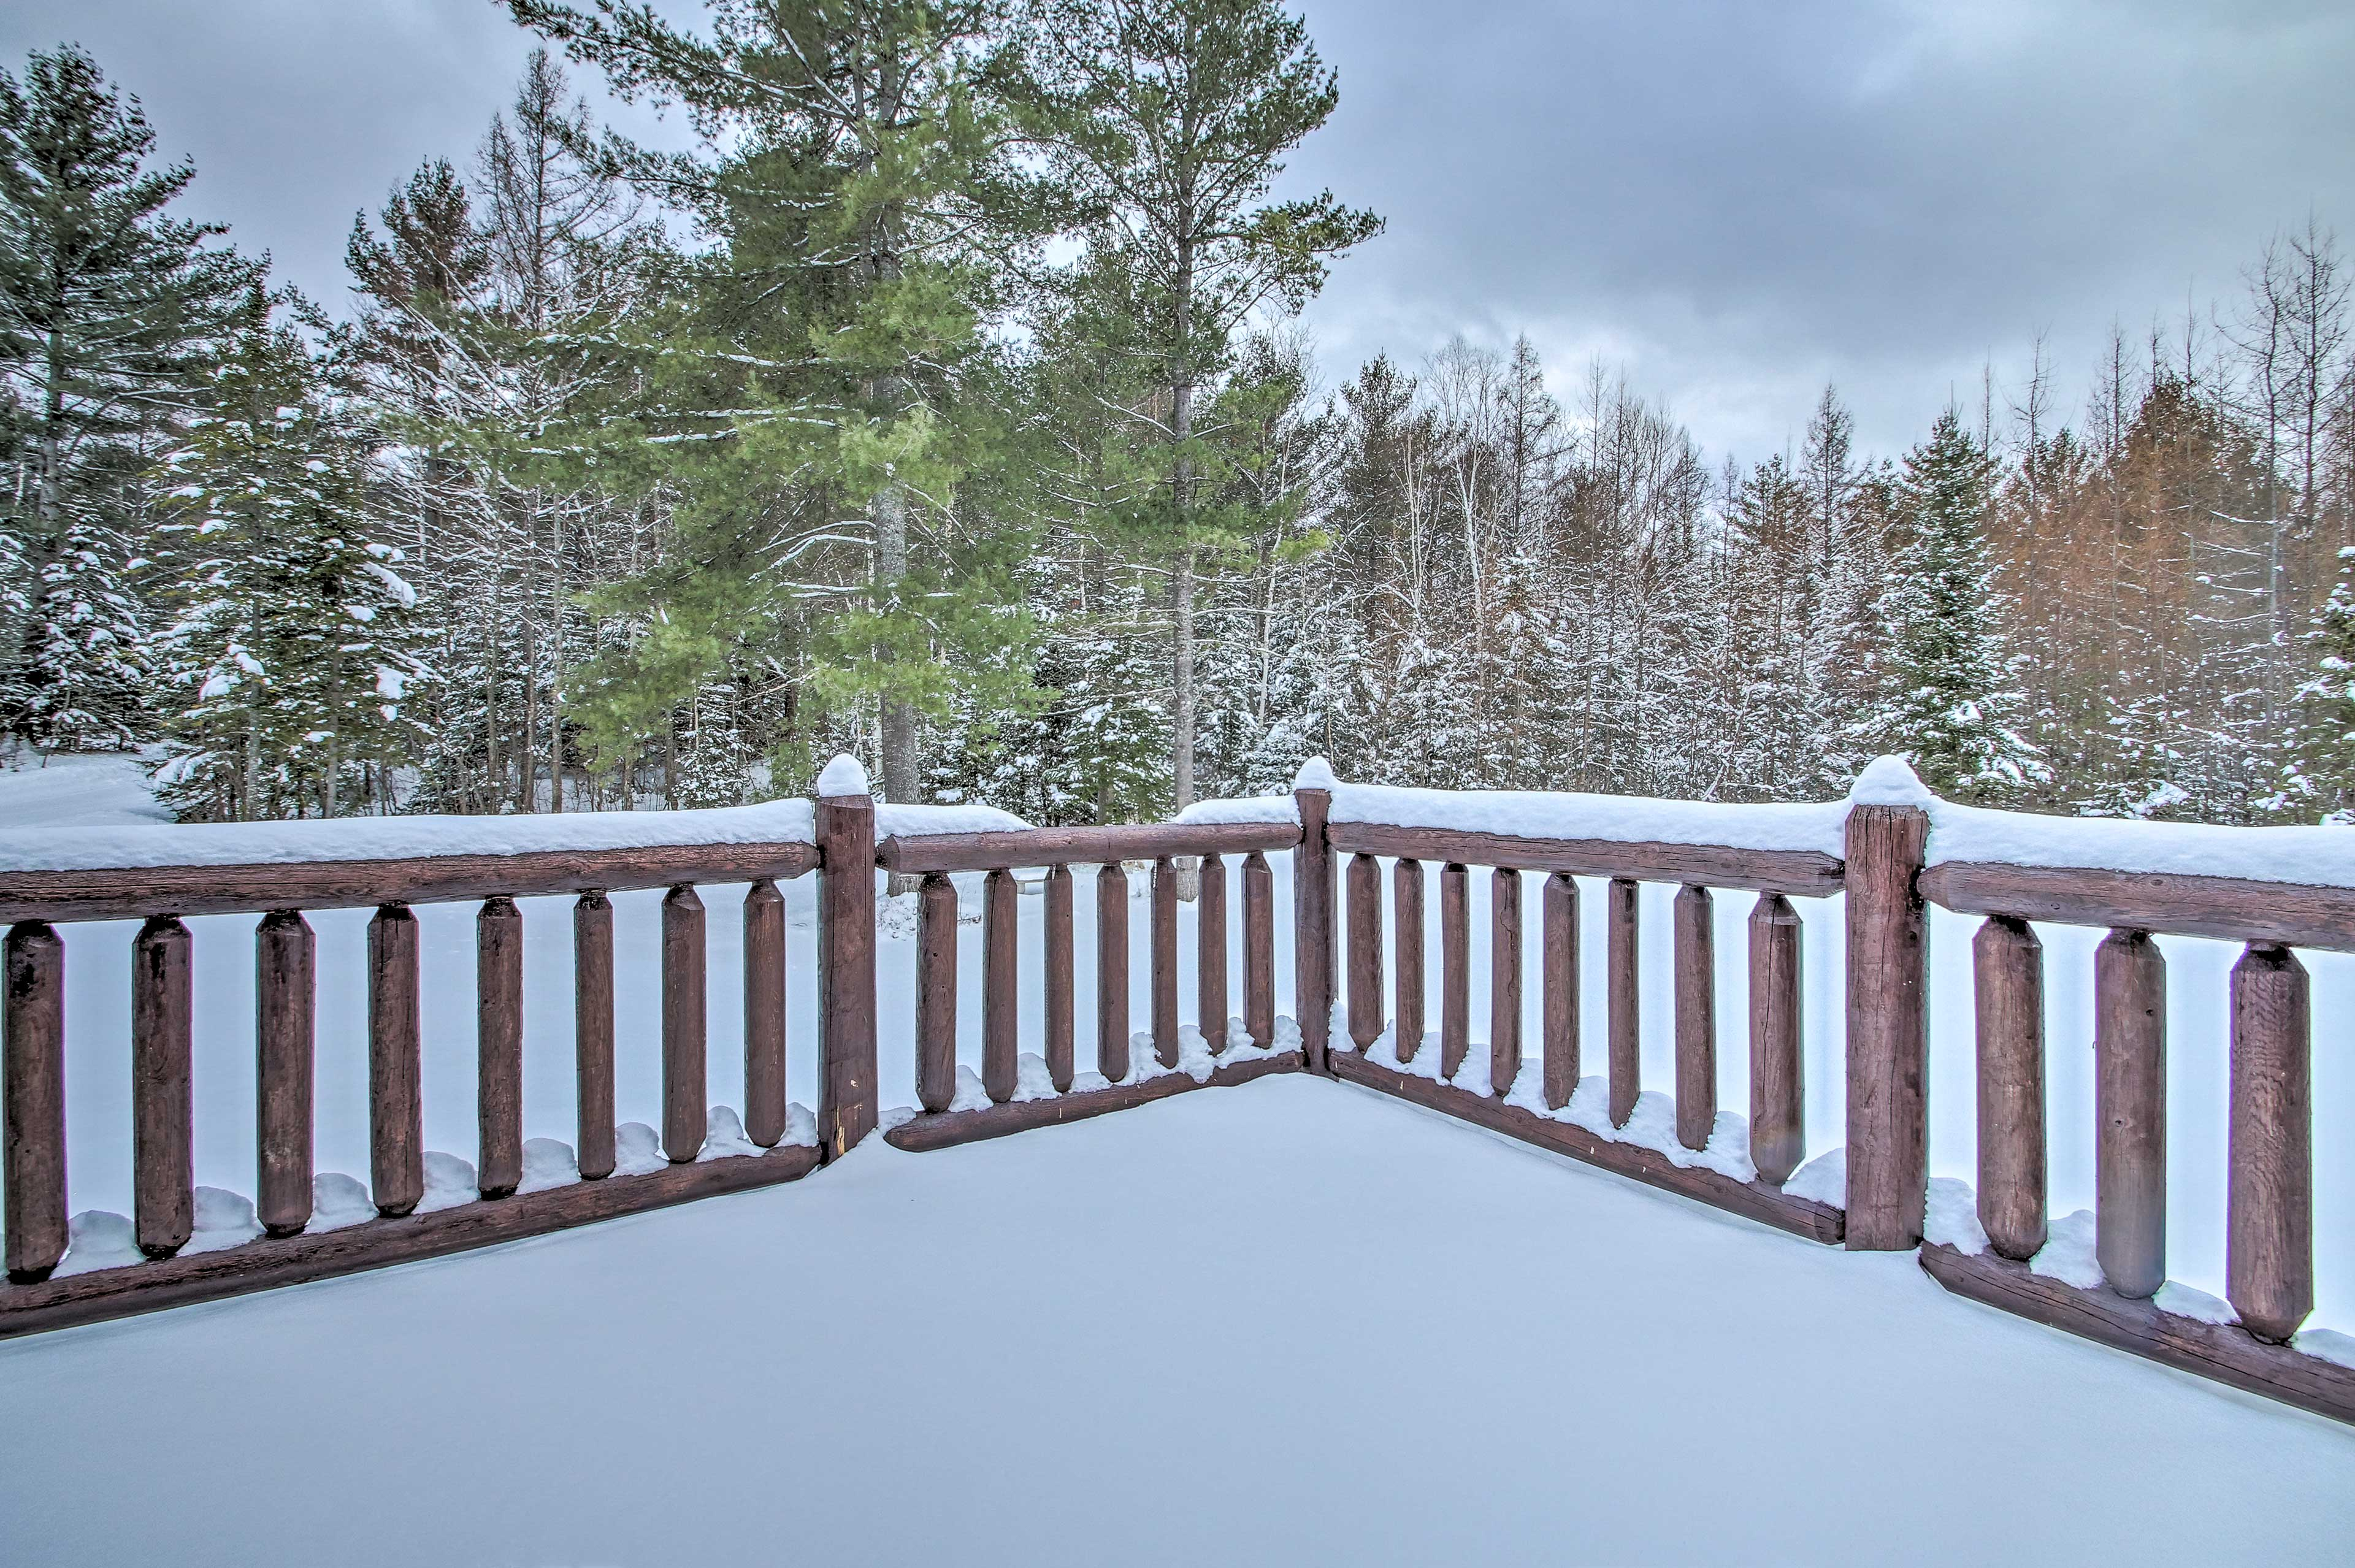 Gaze out at a winter wonderland when the snow falls.